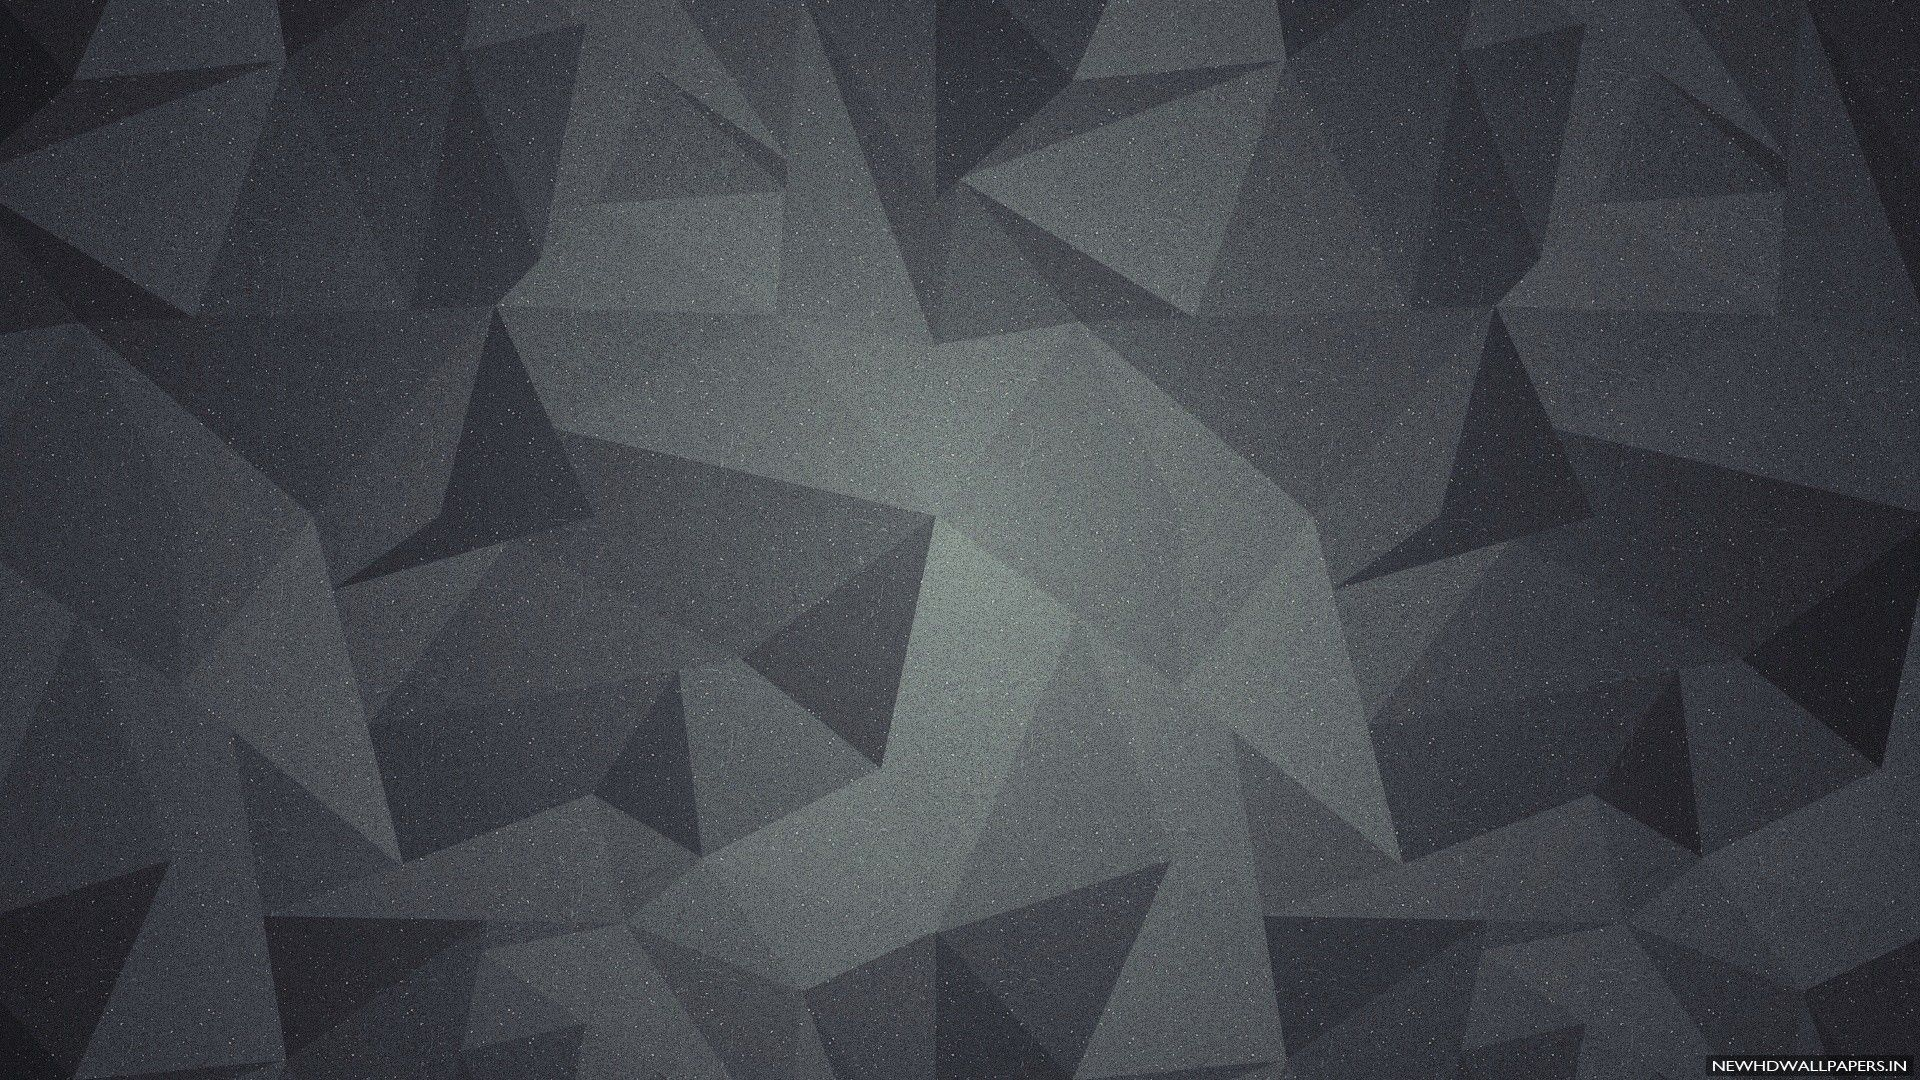 3D geometric abstract shapes dark background